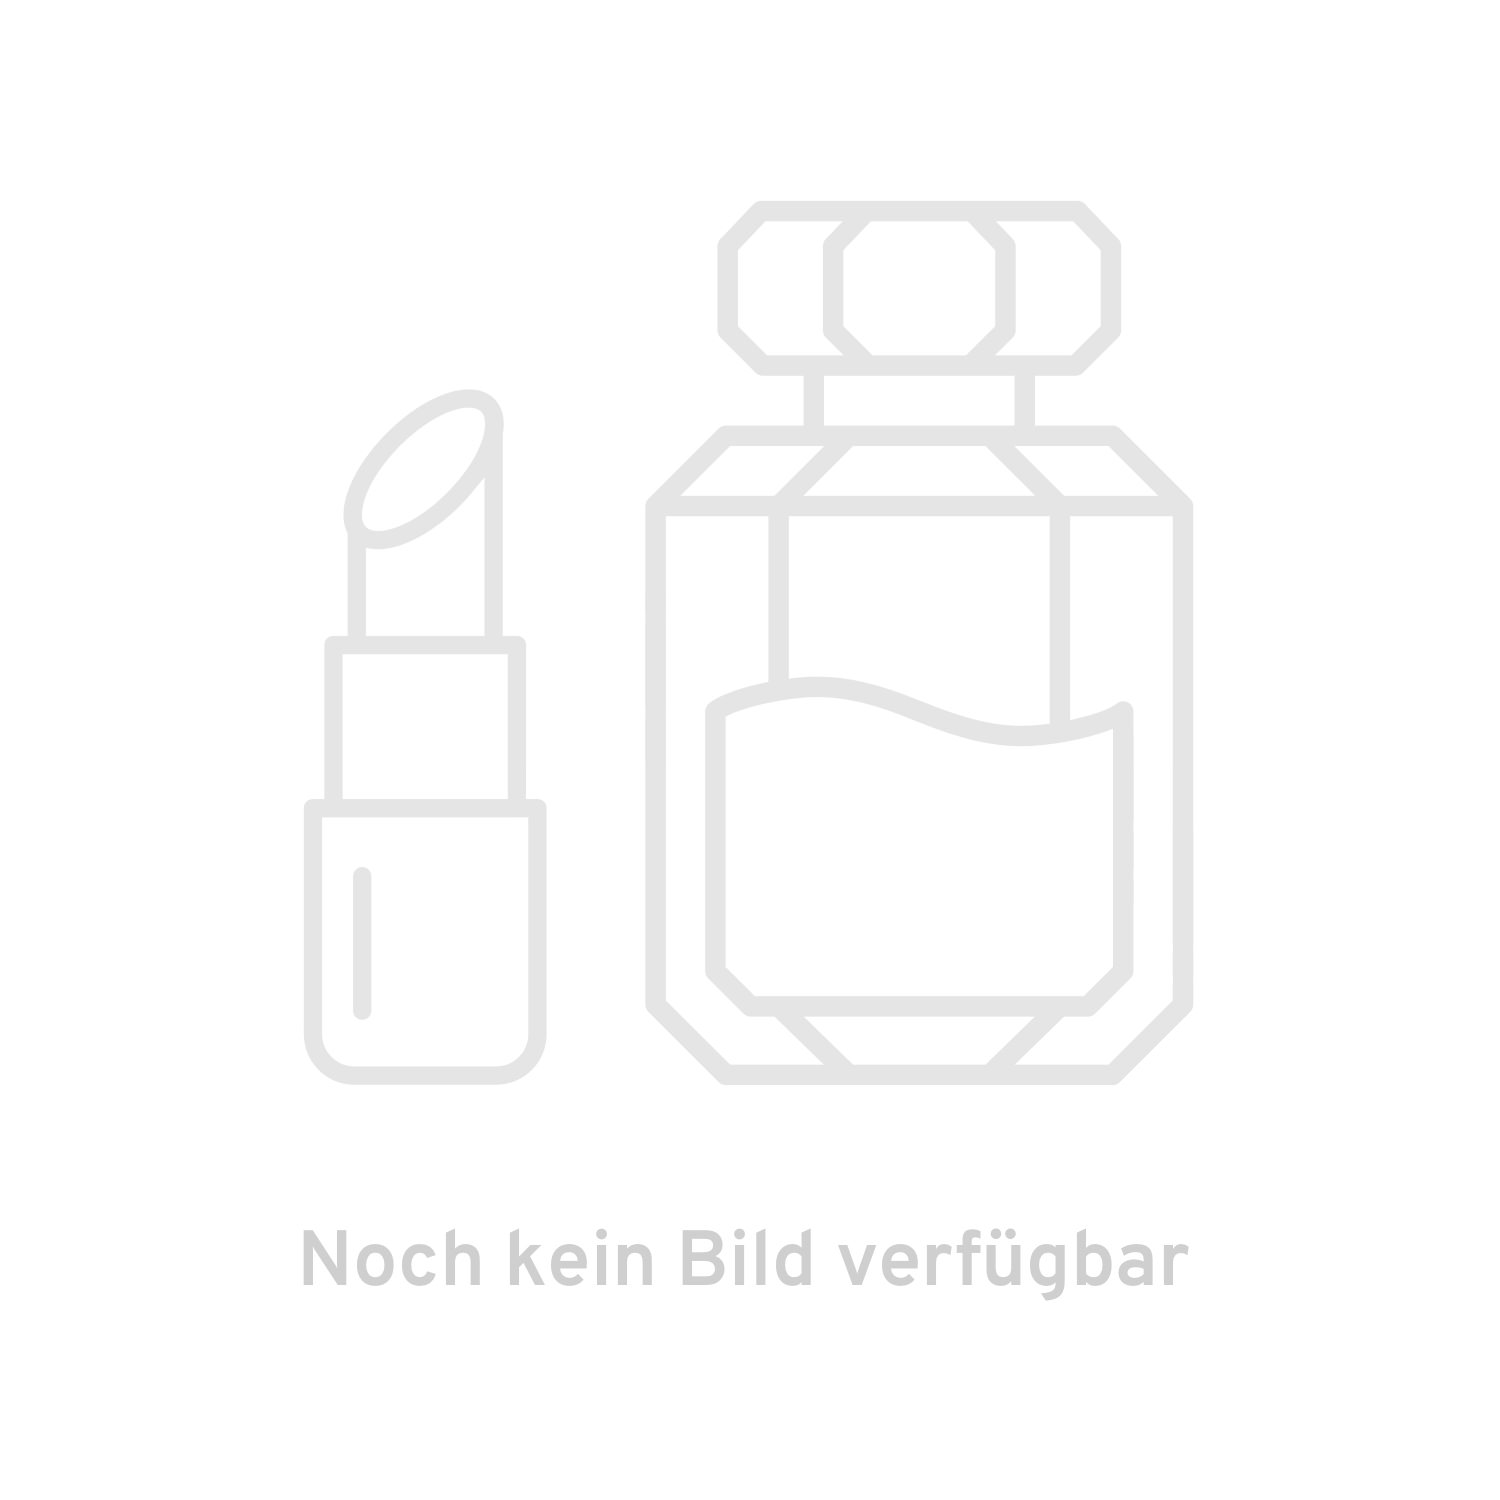 amber cocoon hand wash von molton brown bestellen bei ludwig beck beauty online. Black Bedroom Furniture Sets. Home Design Ideas